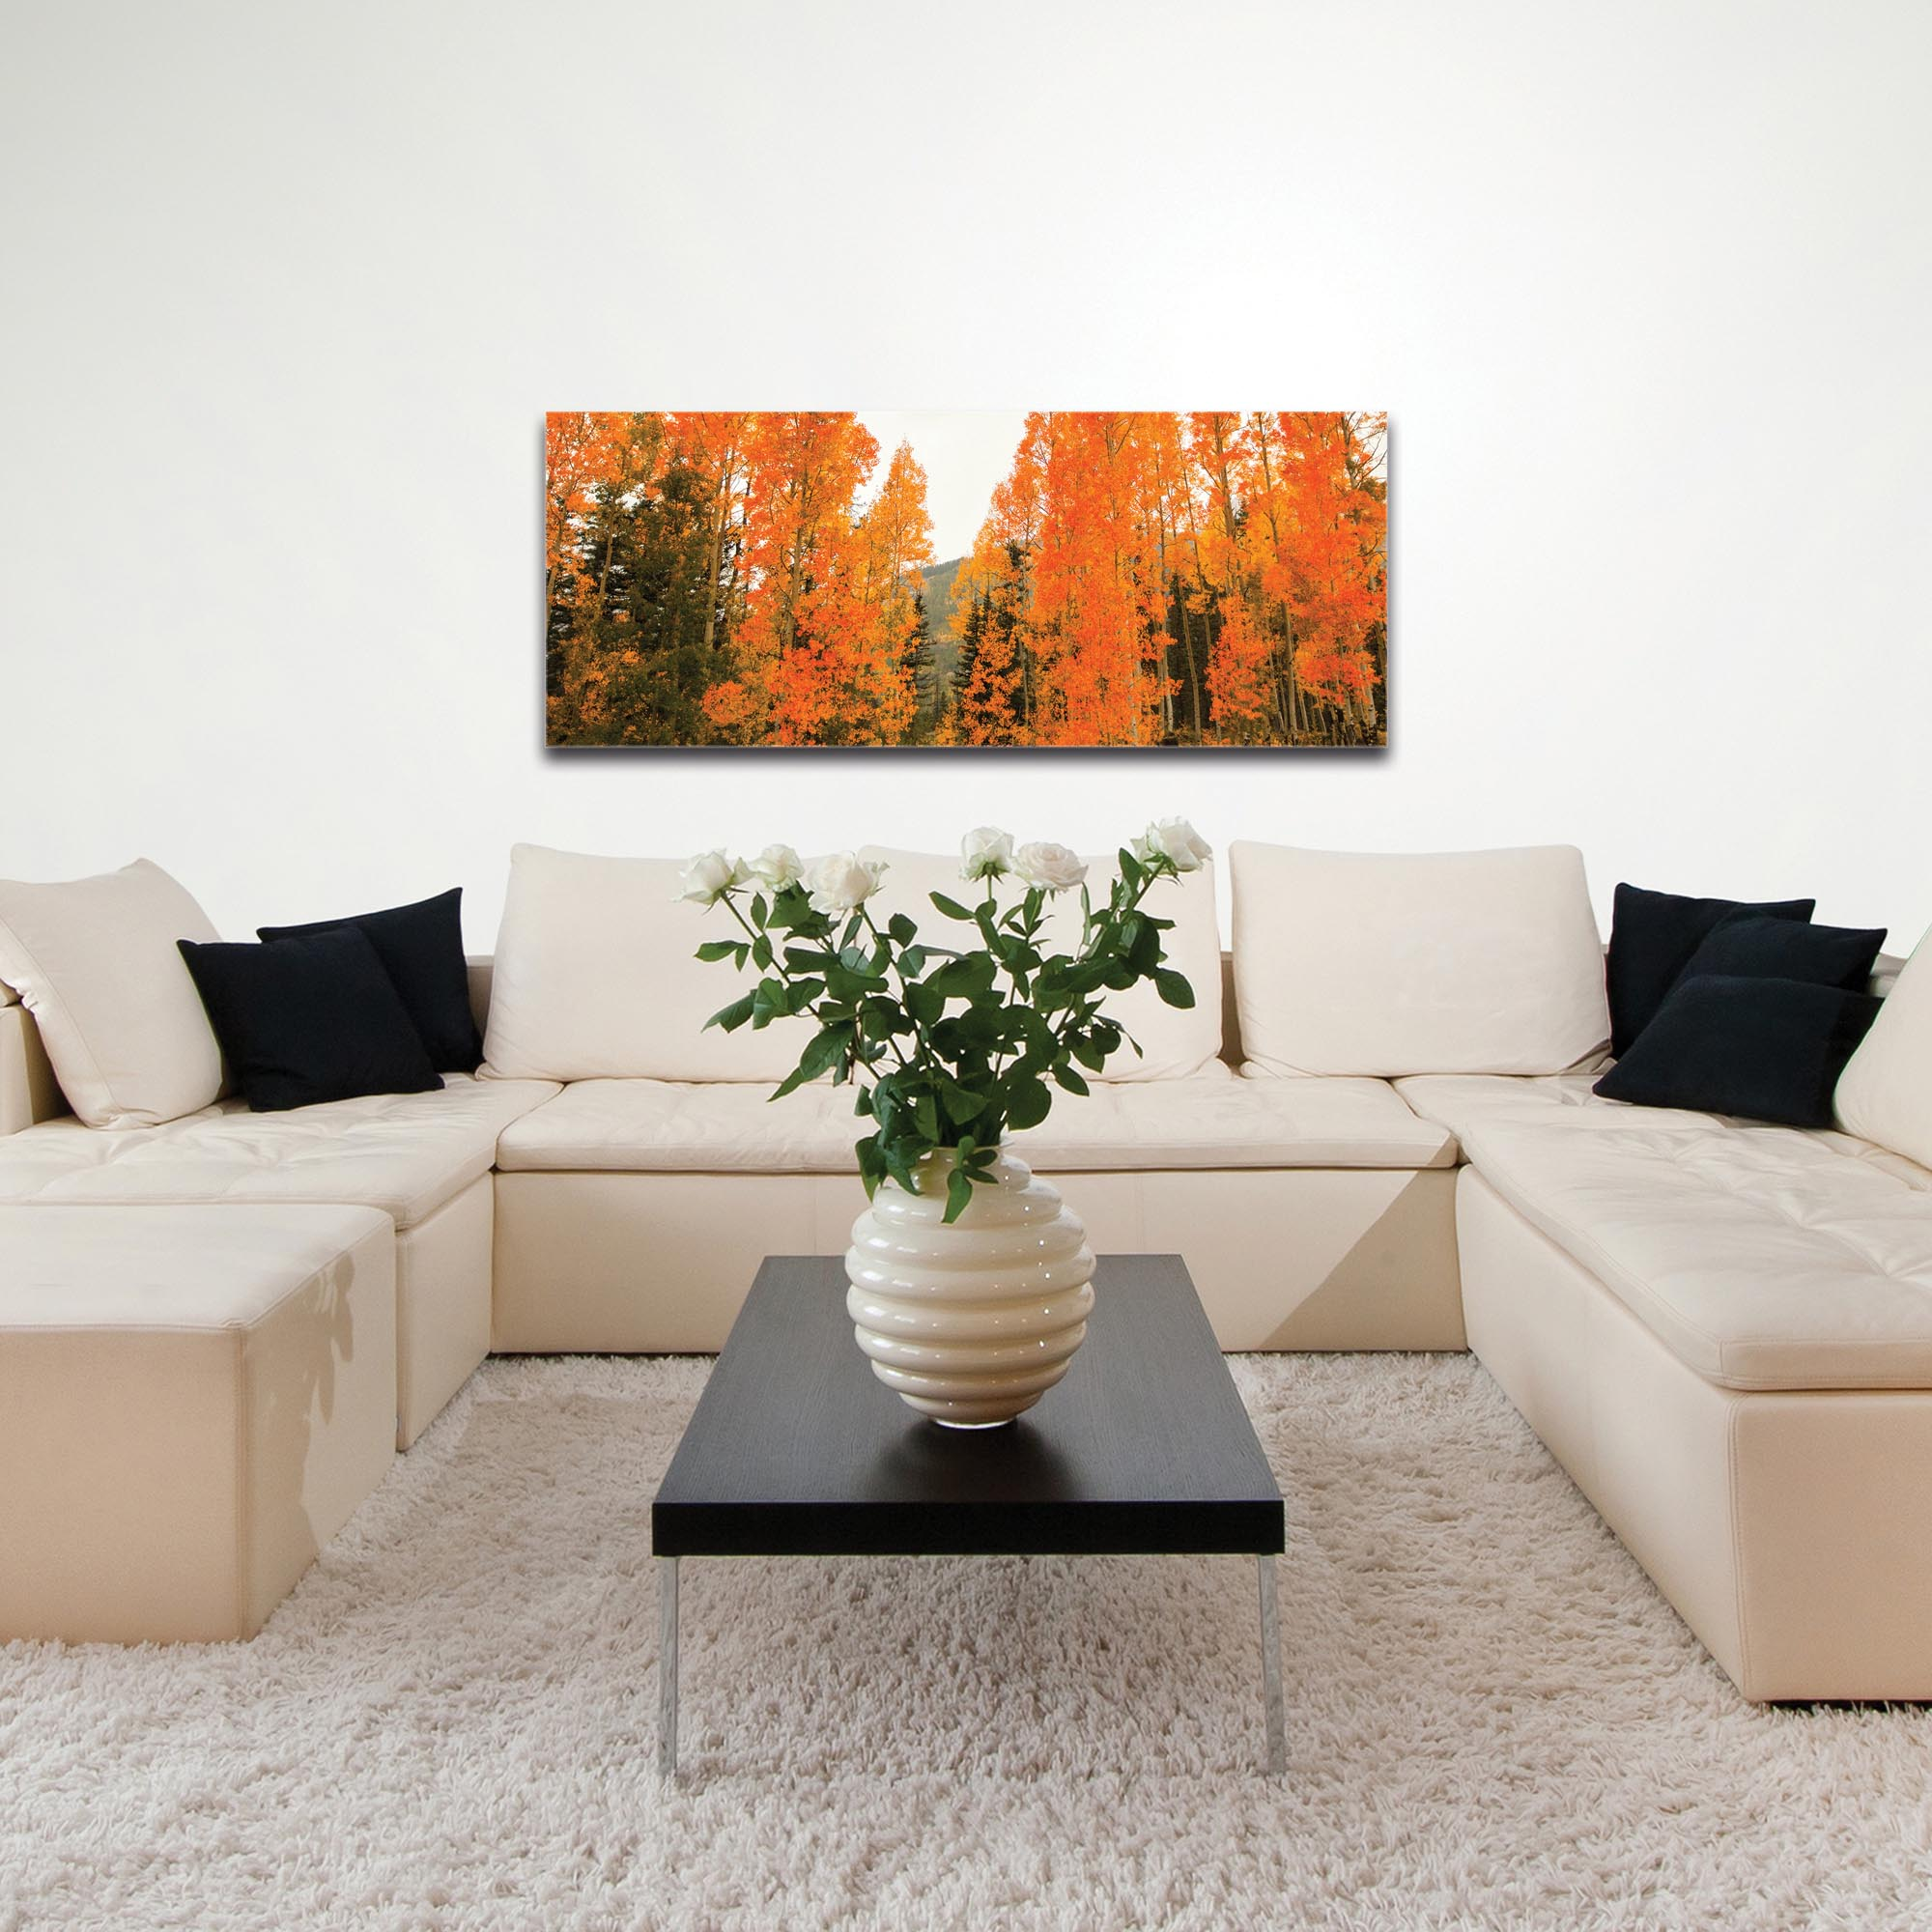 Landscape Photography 'Aspen Fire' - Autumn Nature Art on Metal or Plexiglass - Image 3